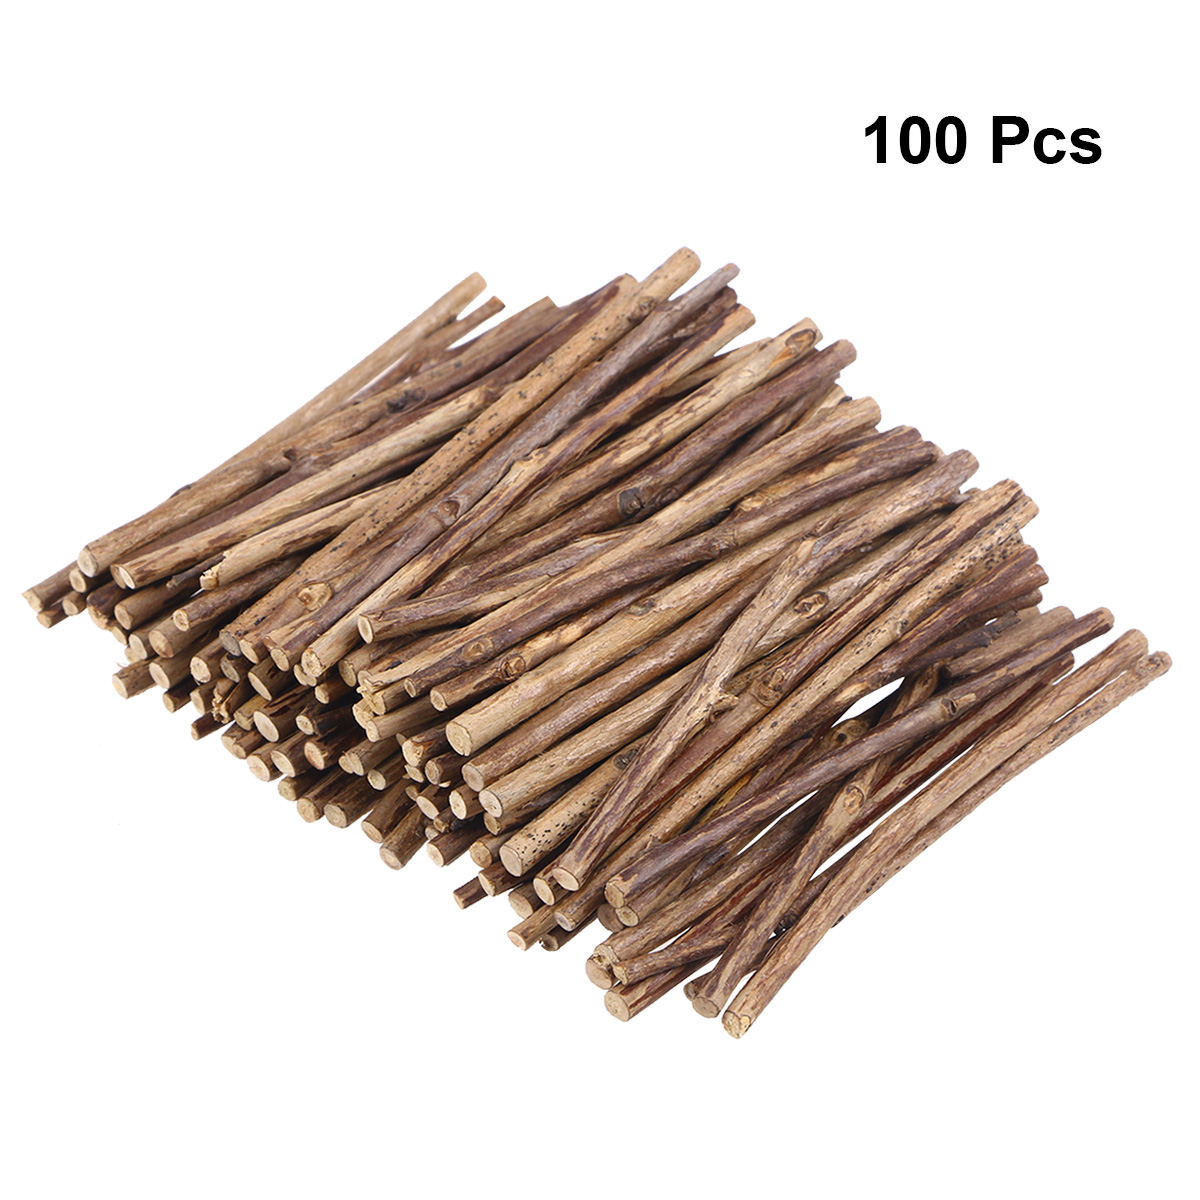 100pcs 10CM Long 0.3-0.5CM In Diameter Wood Log Sticks For DIY Crafts Photo Props Wood Color DIY Hand Painting Photography Props(China)